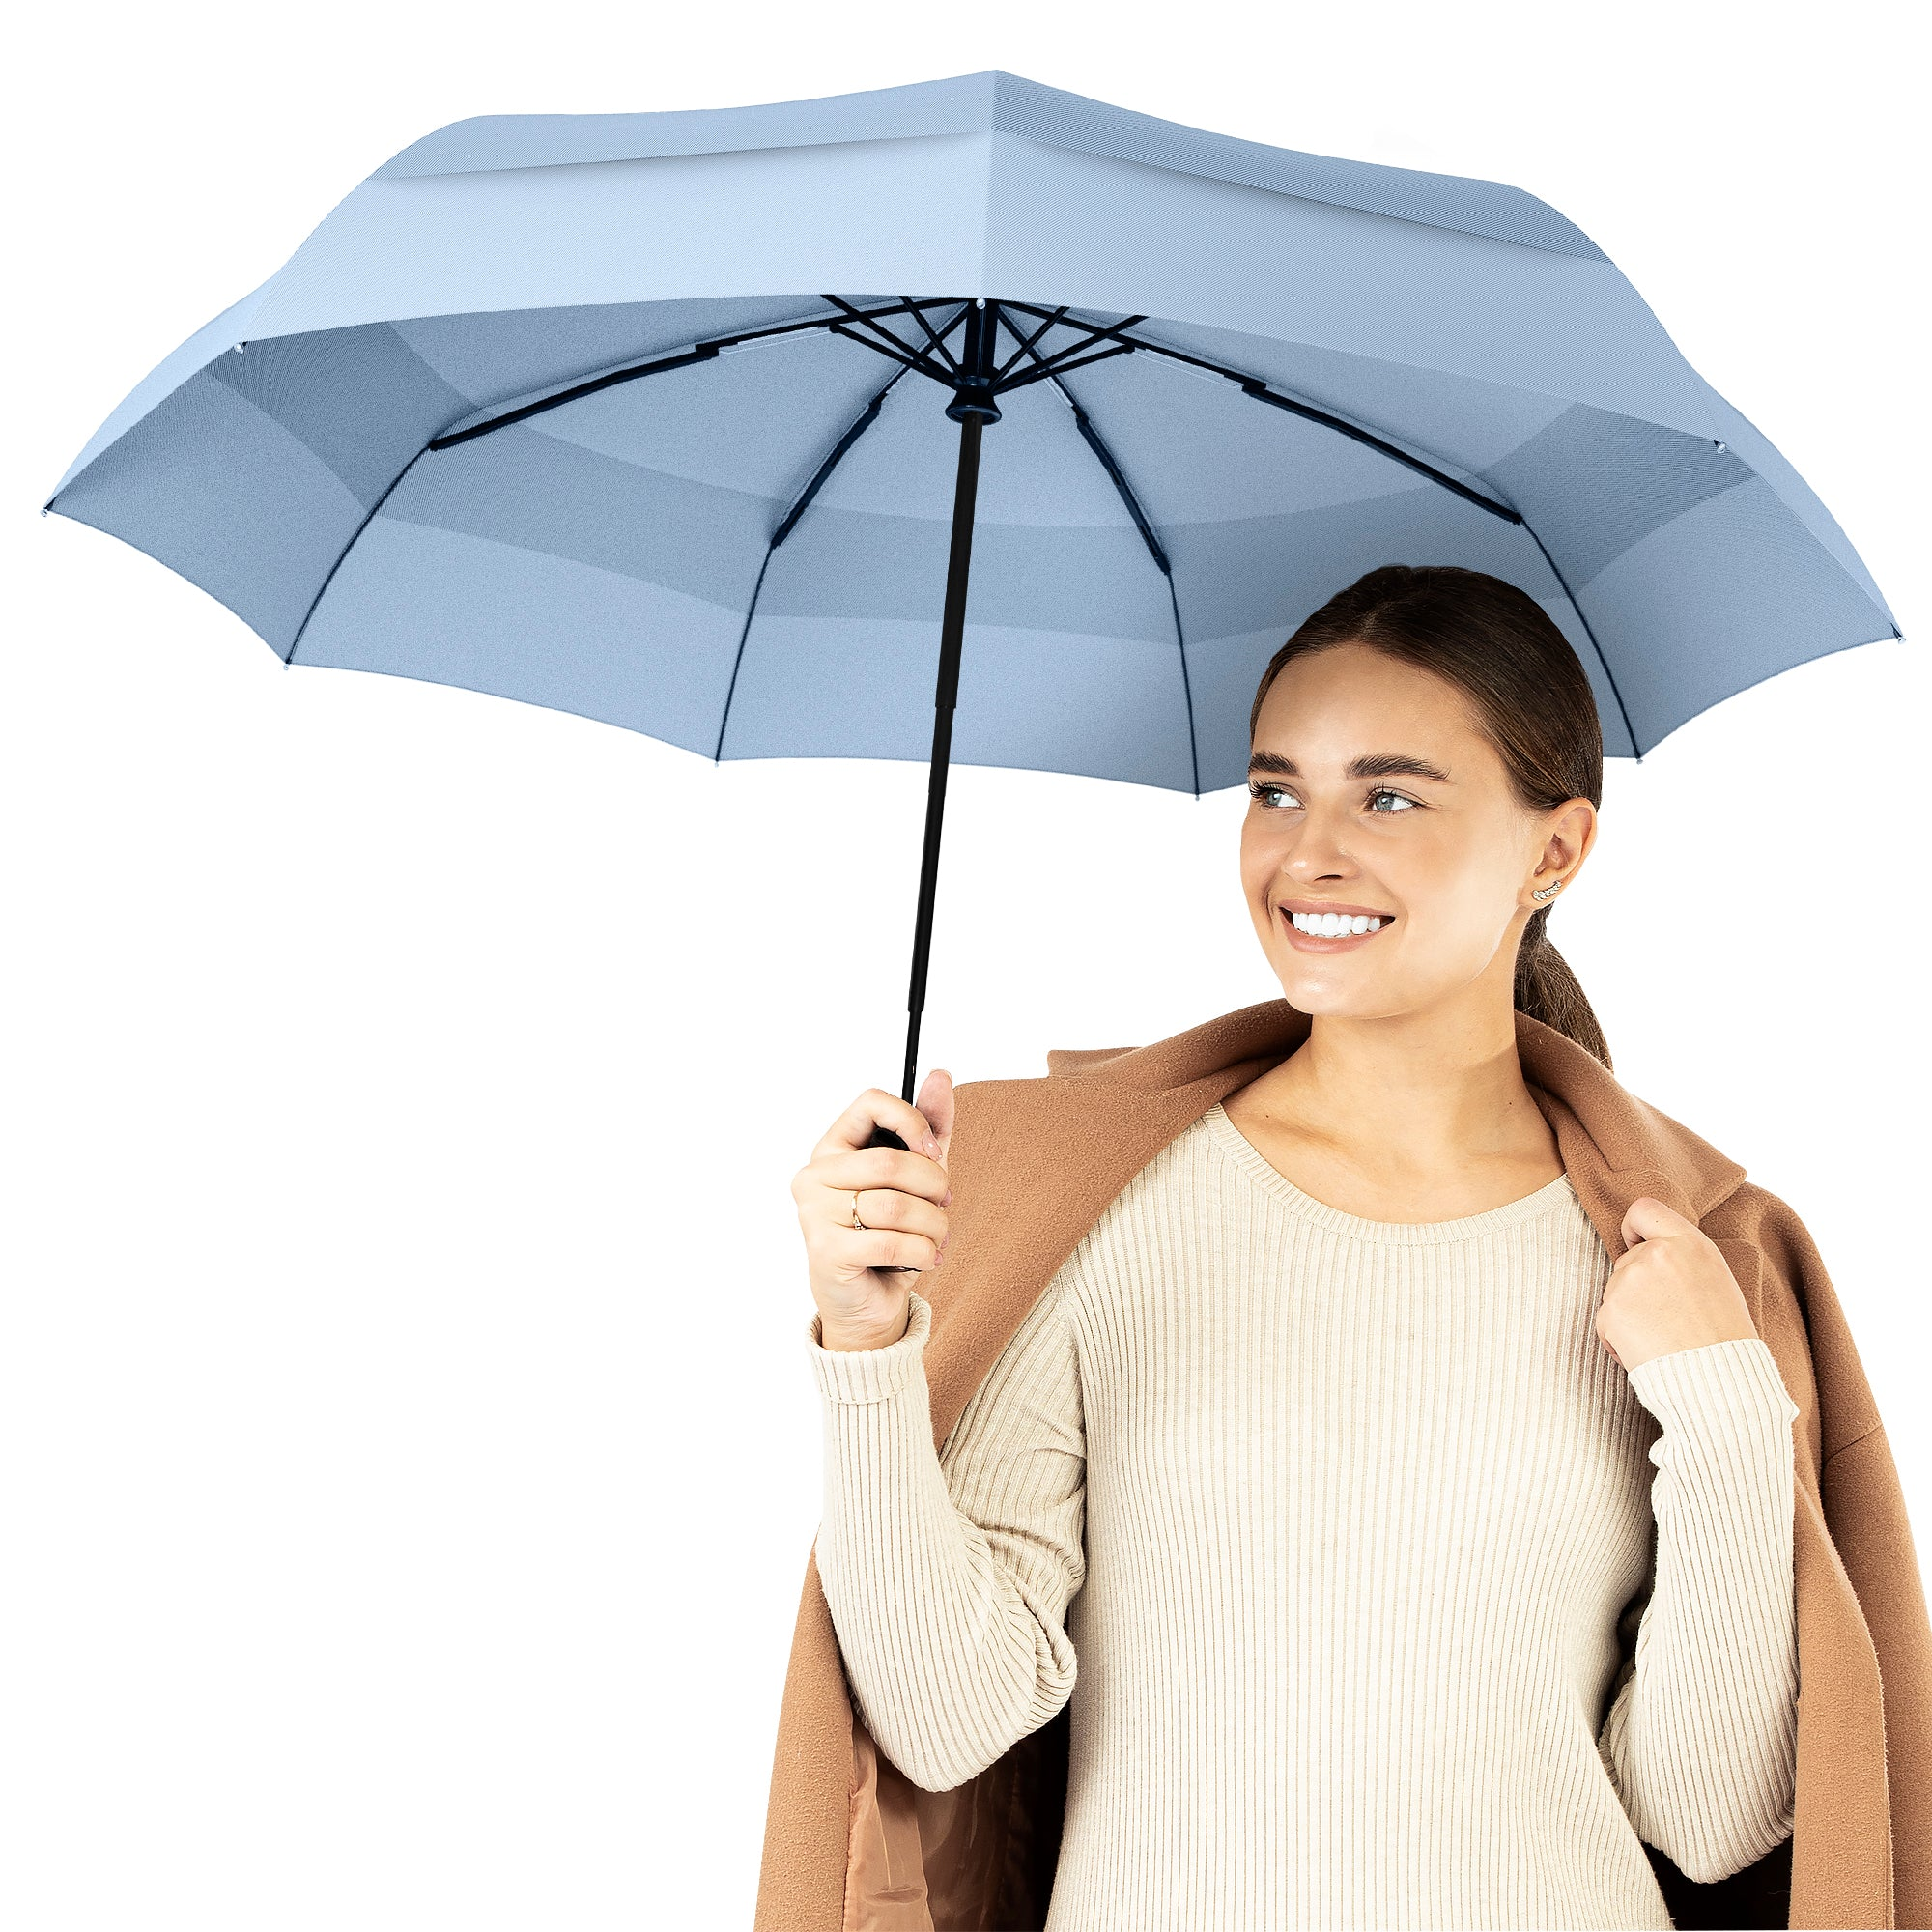 Windproof Travel Umbrella - Compact, Automatic, Slate Blue